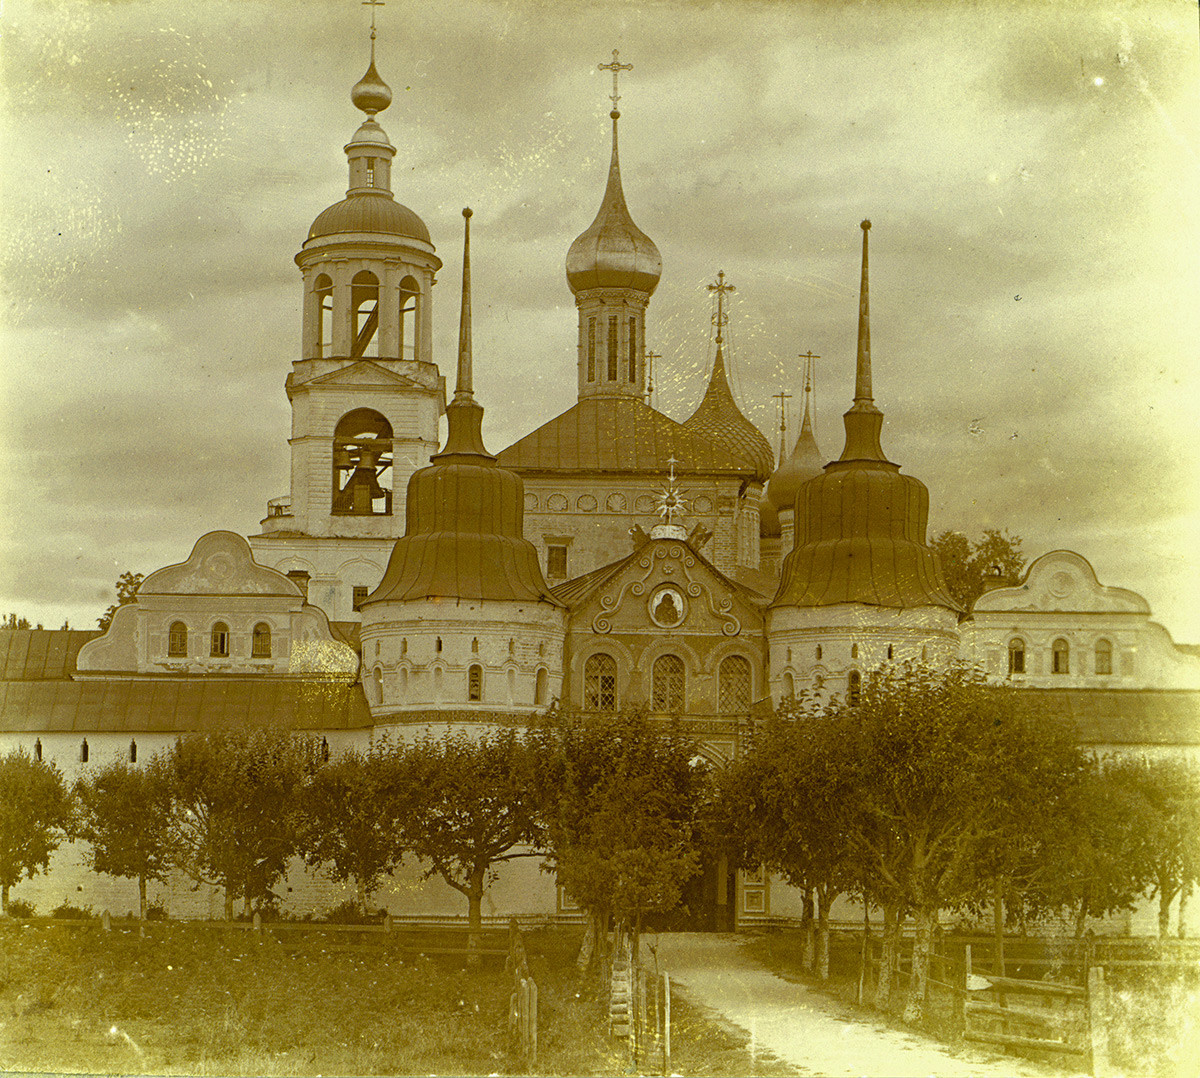 Holy Gate & Church of St. Nicholas. West view. 1910